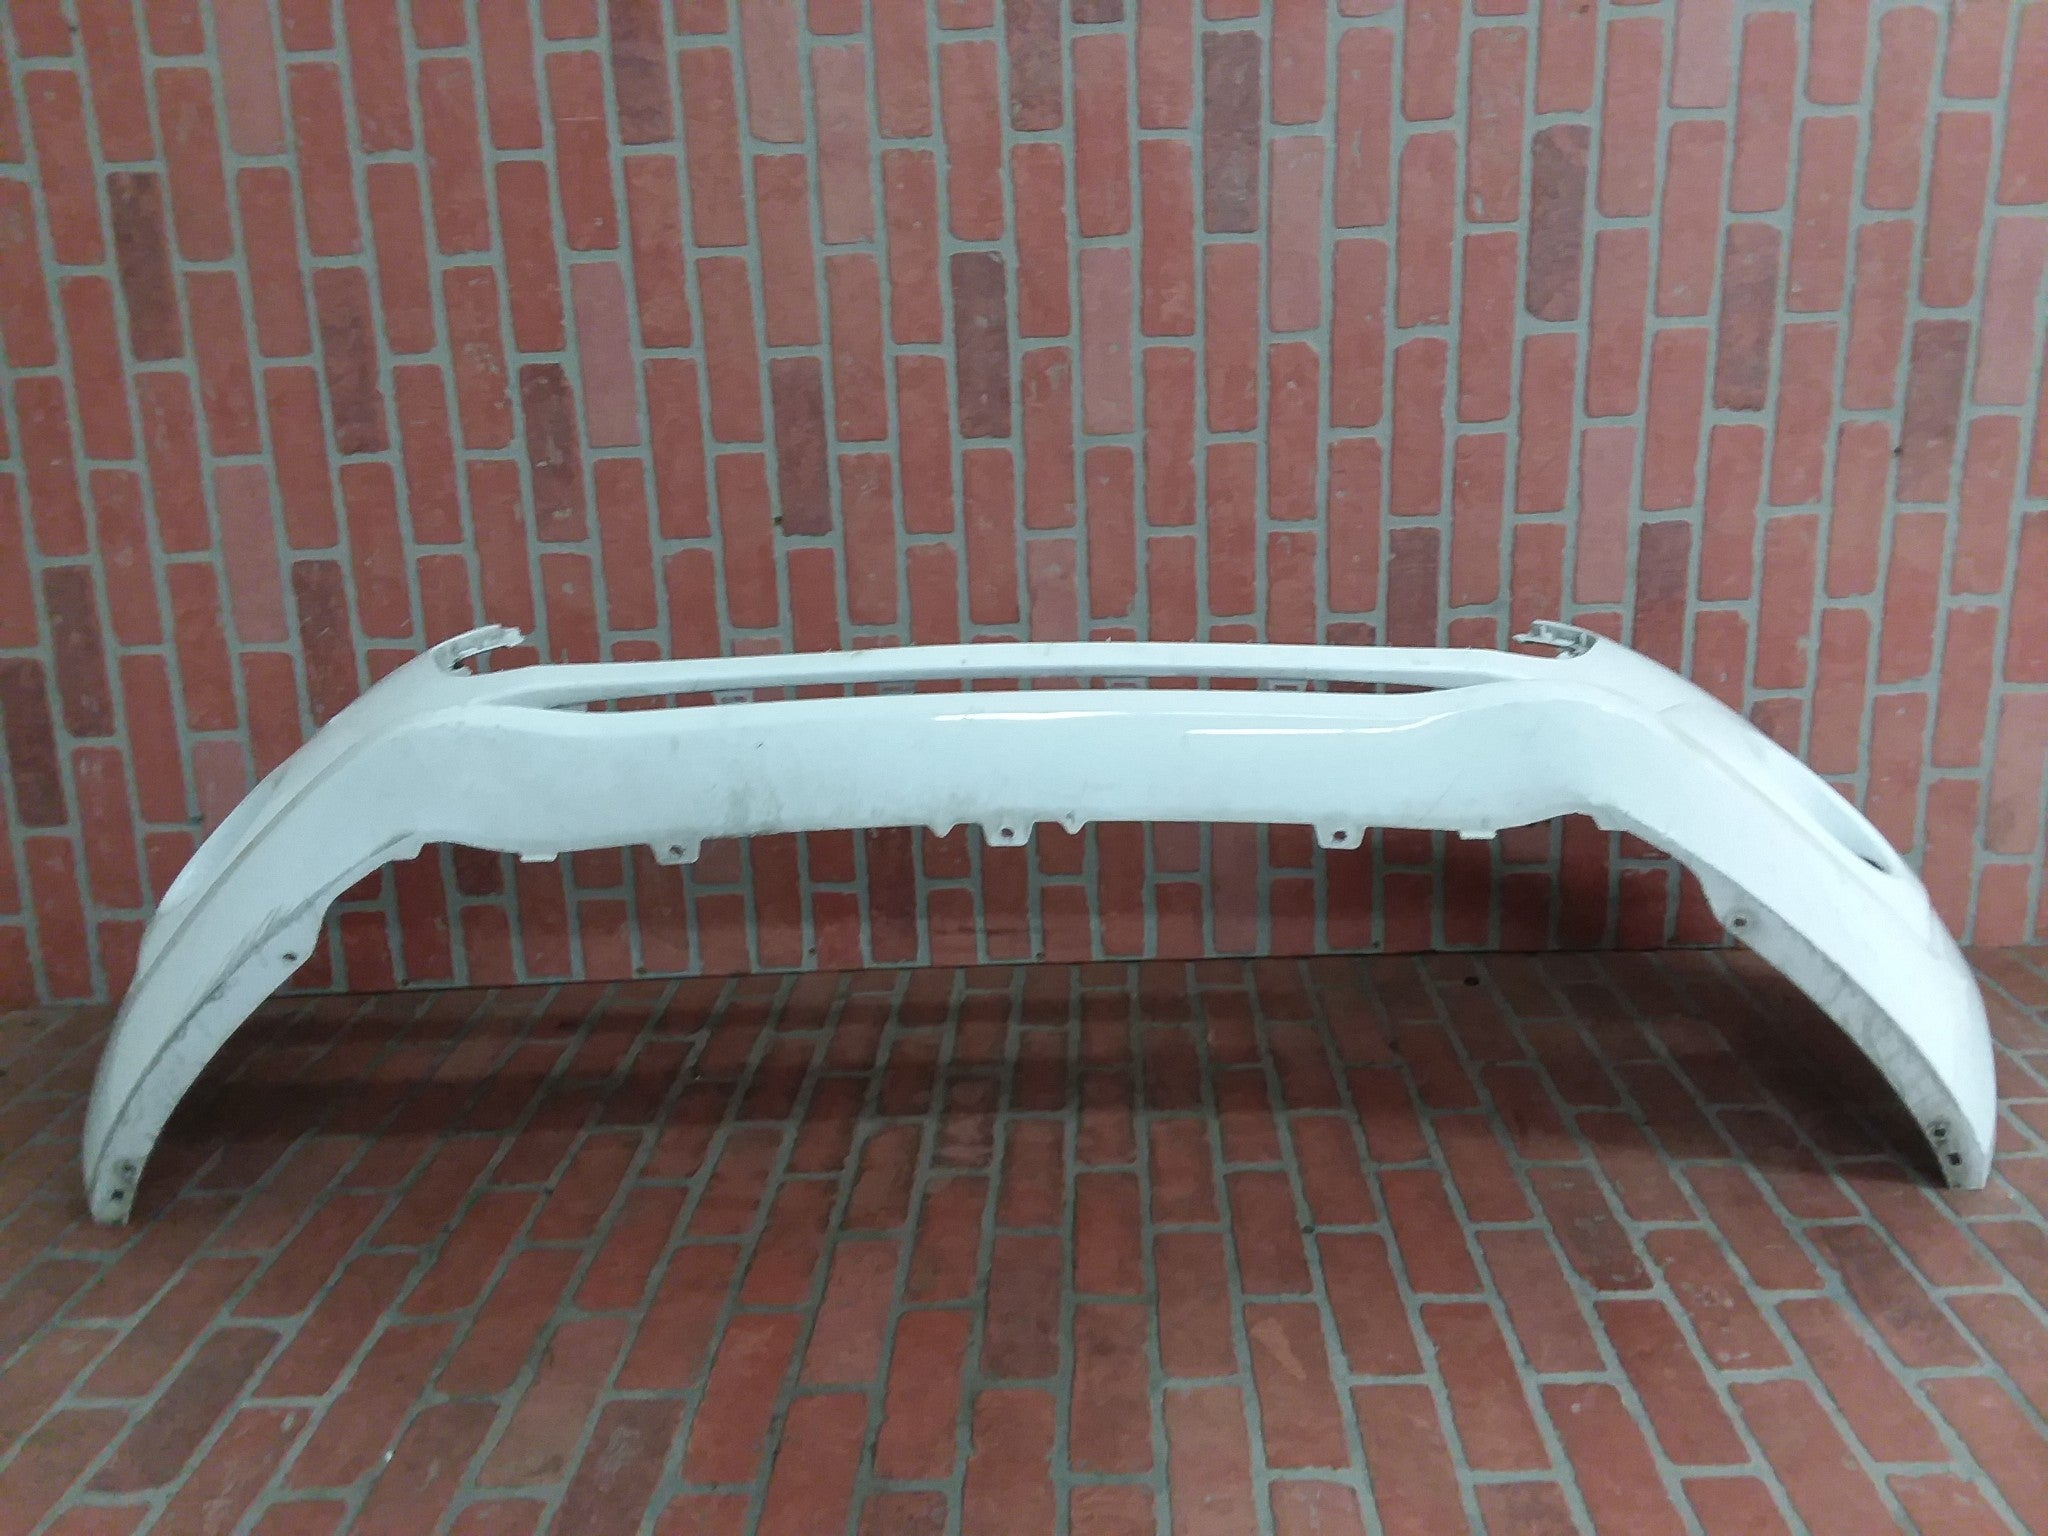 2014 2015 2016 2017 2018 Ford Transit Connect Front Lower Bumper Cover White OEM